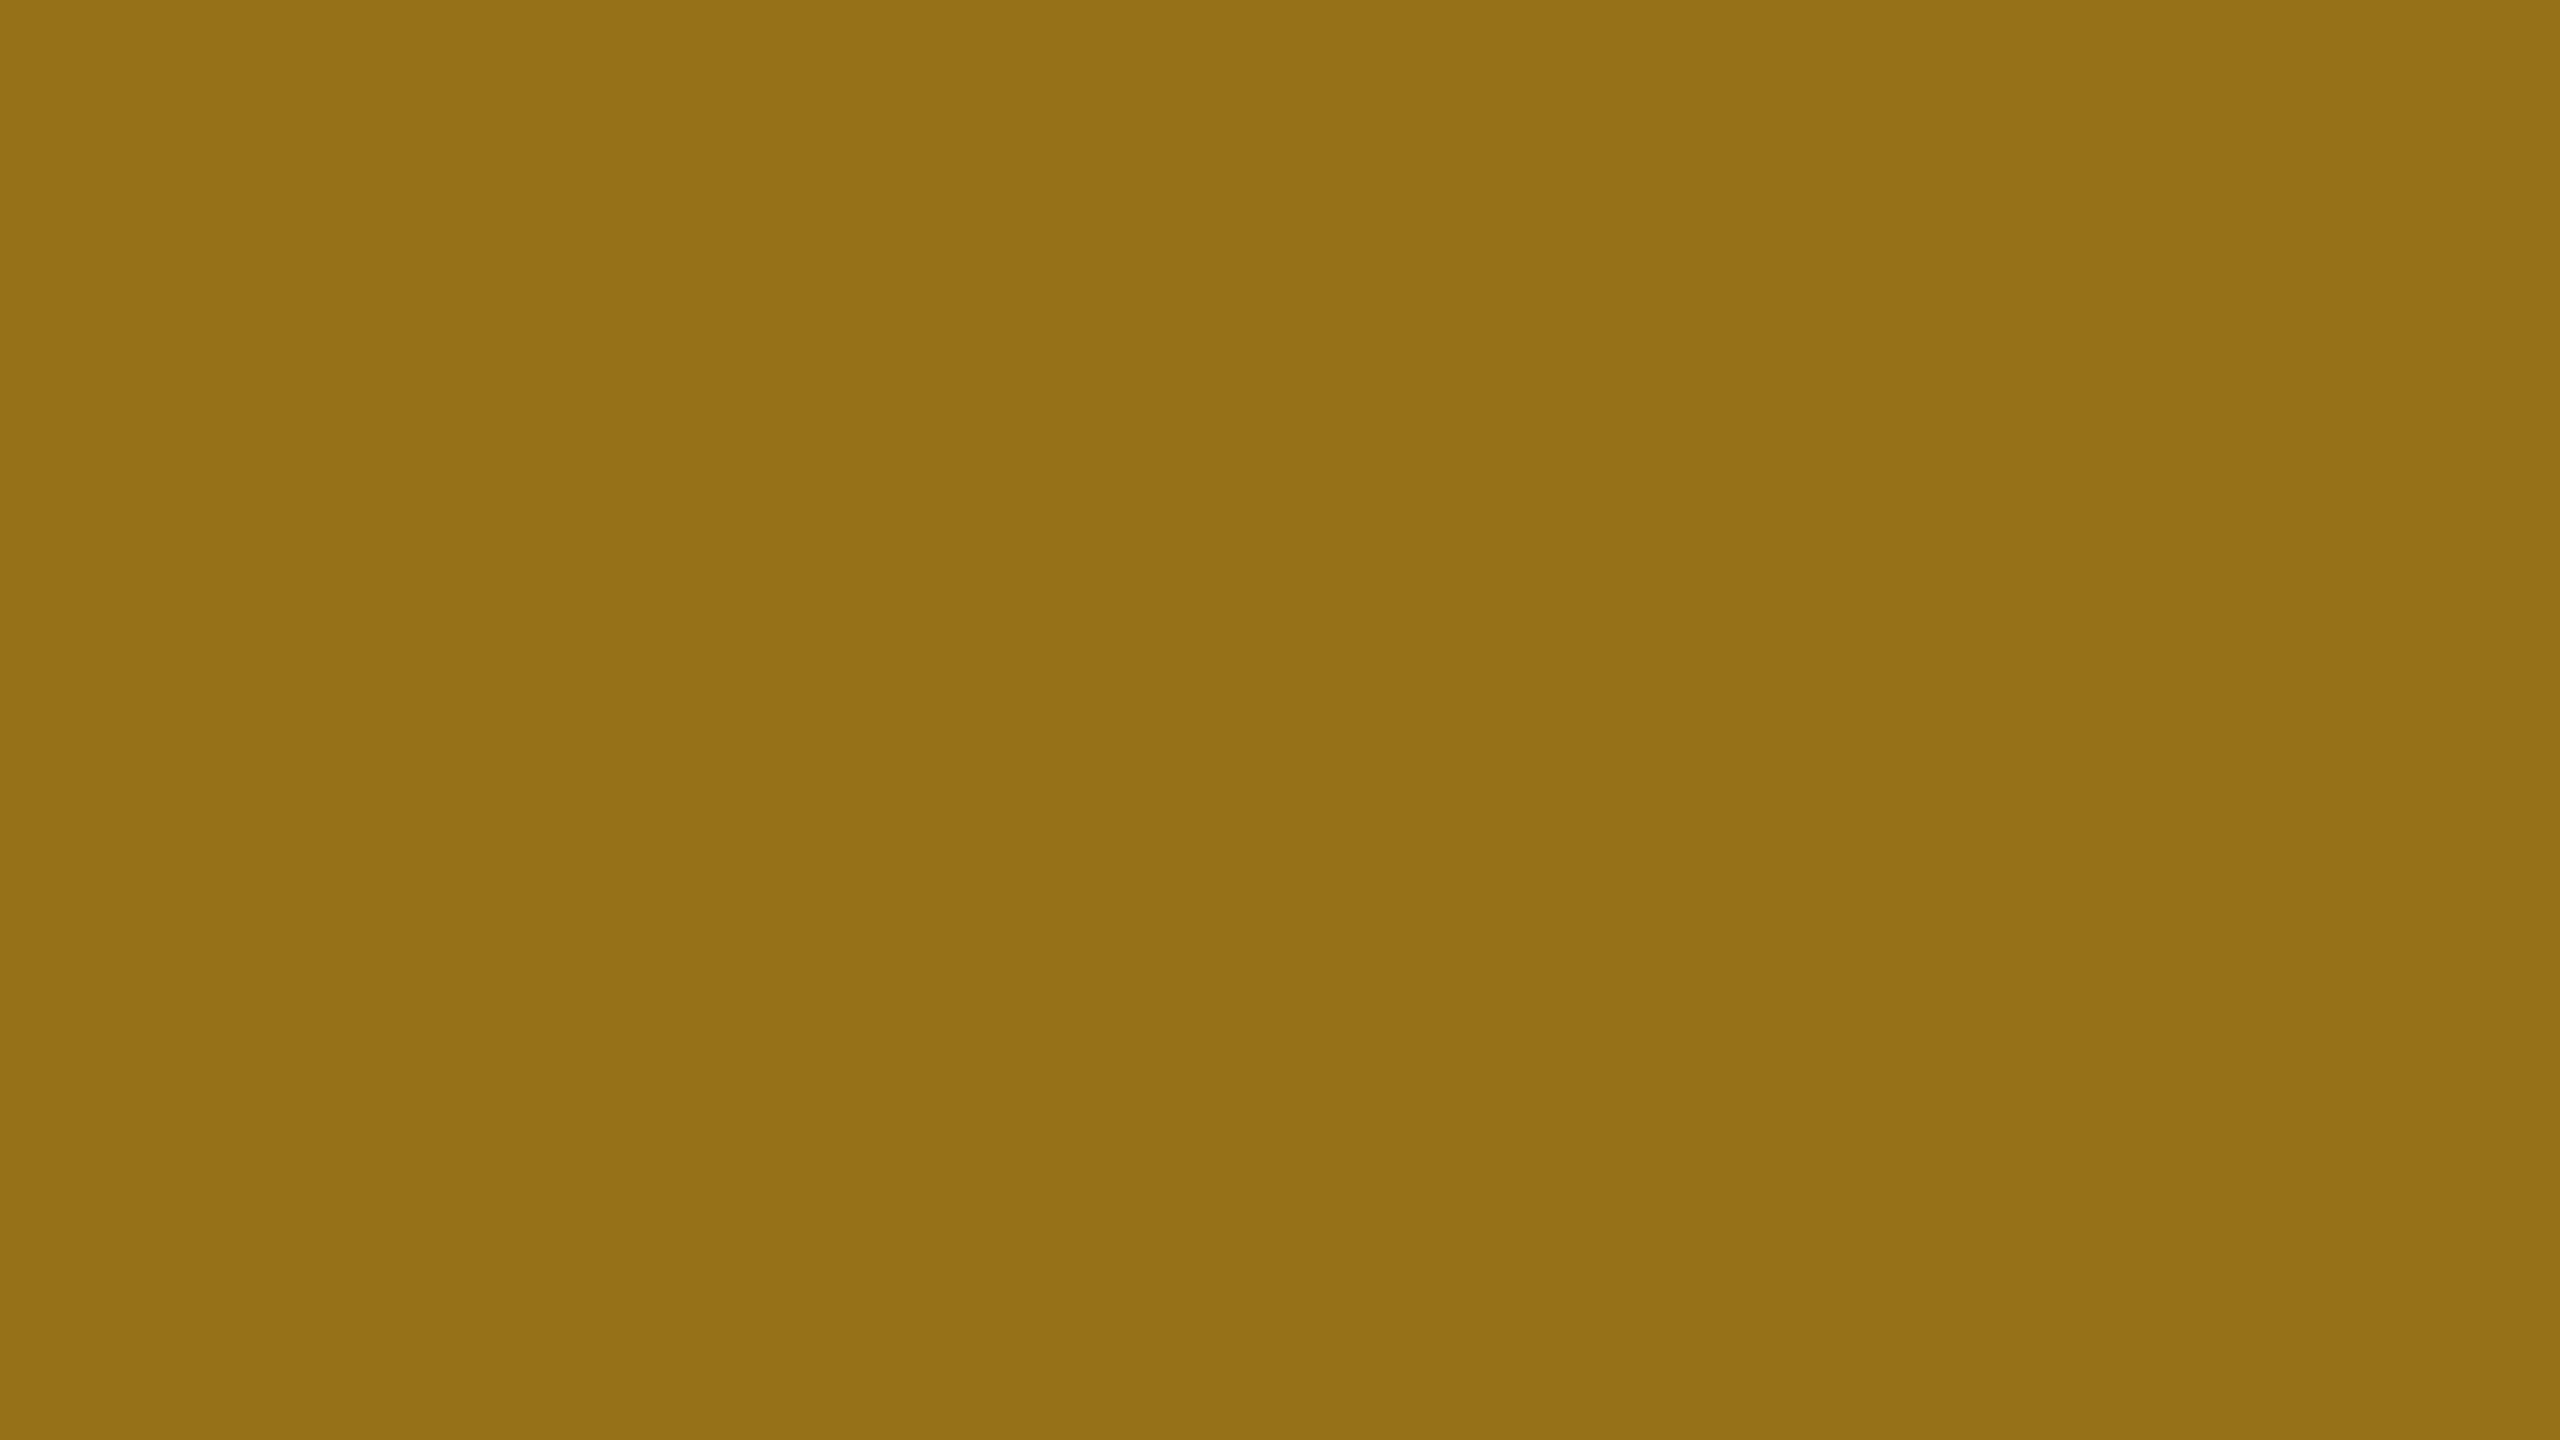 2560x1440 Drab Solid Color Background